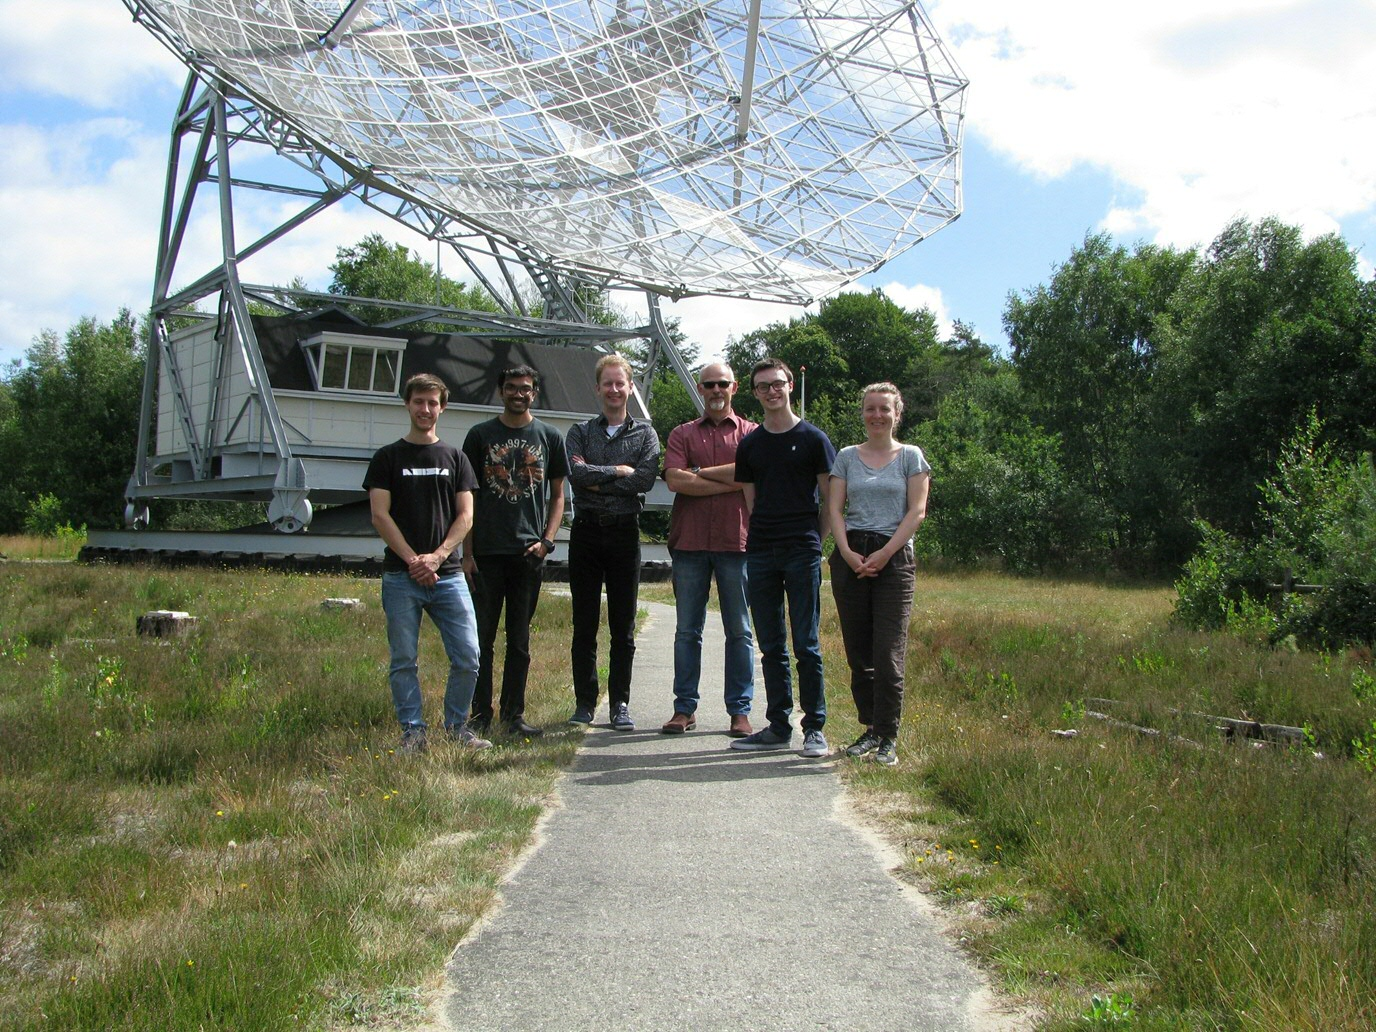 One of the student teams of the HTSM Honours Master summer school